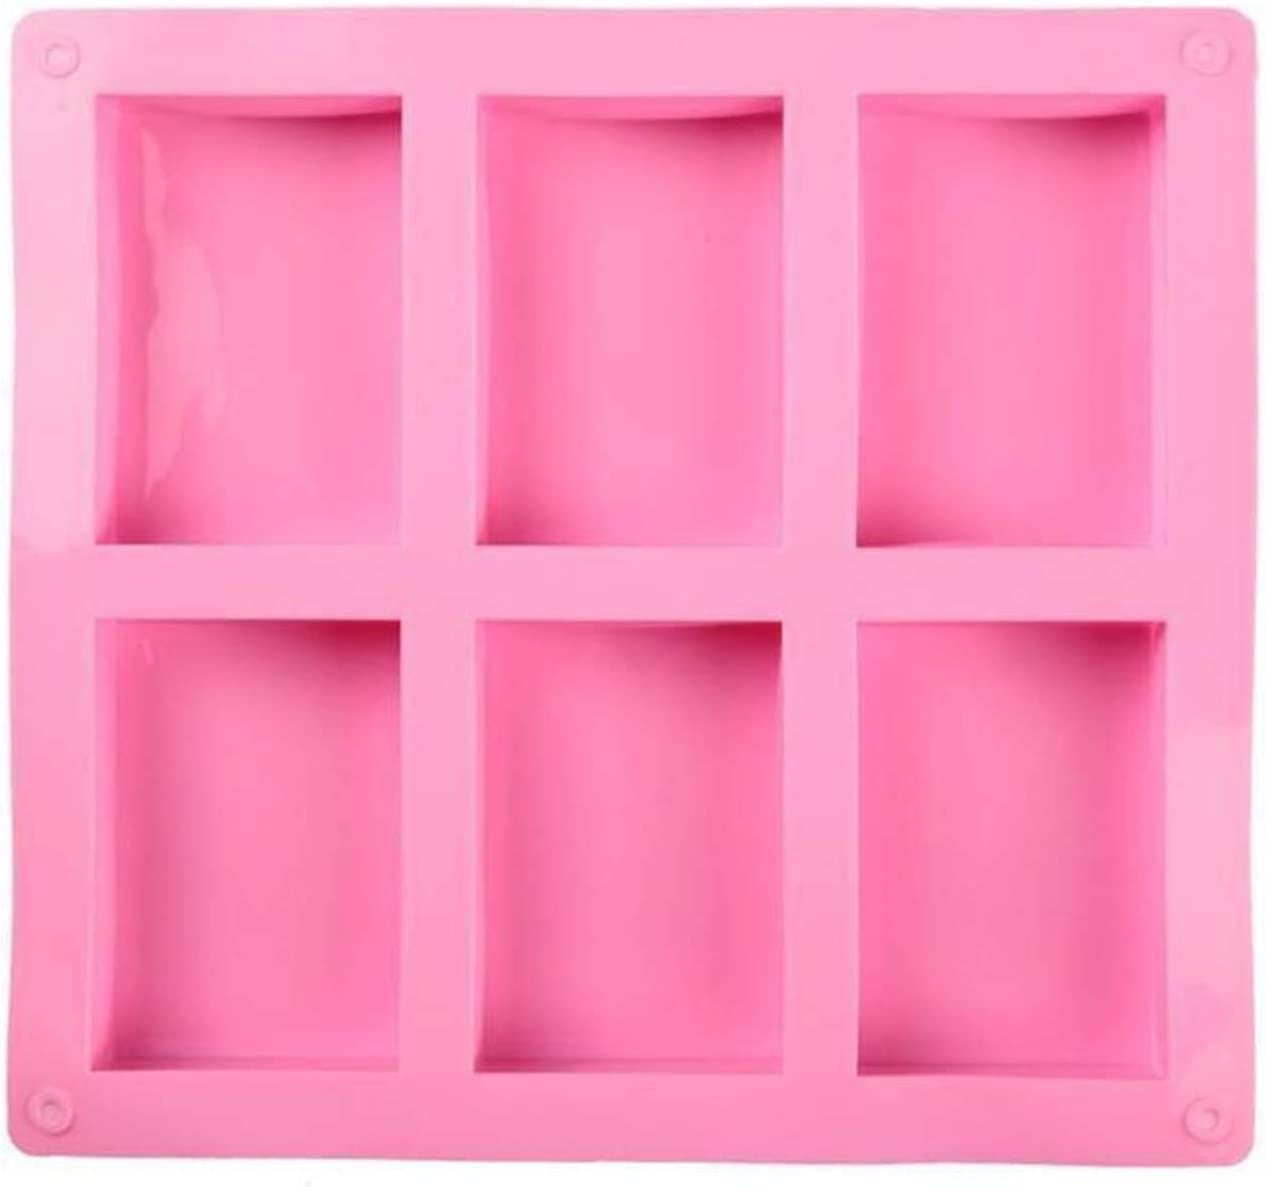 CGRTART Soap Base Max 51% OFF Silicone Pudding Candy Mold Si Max 52% OFF Cavity Square 6